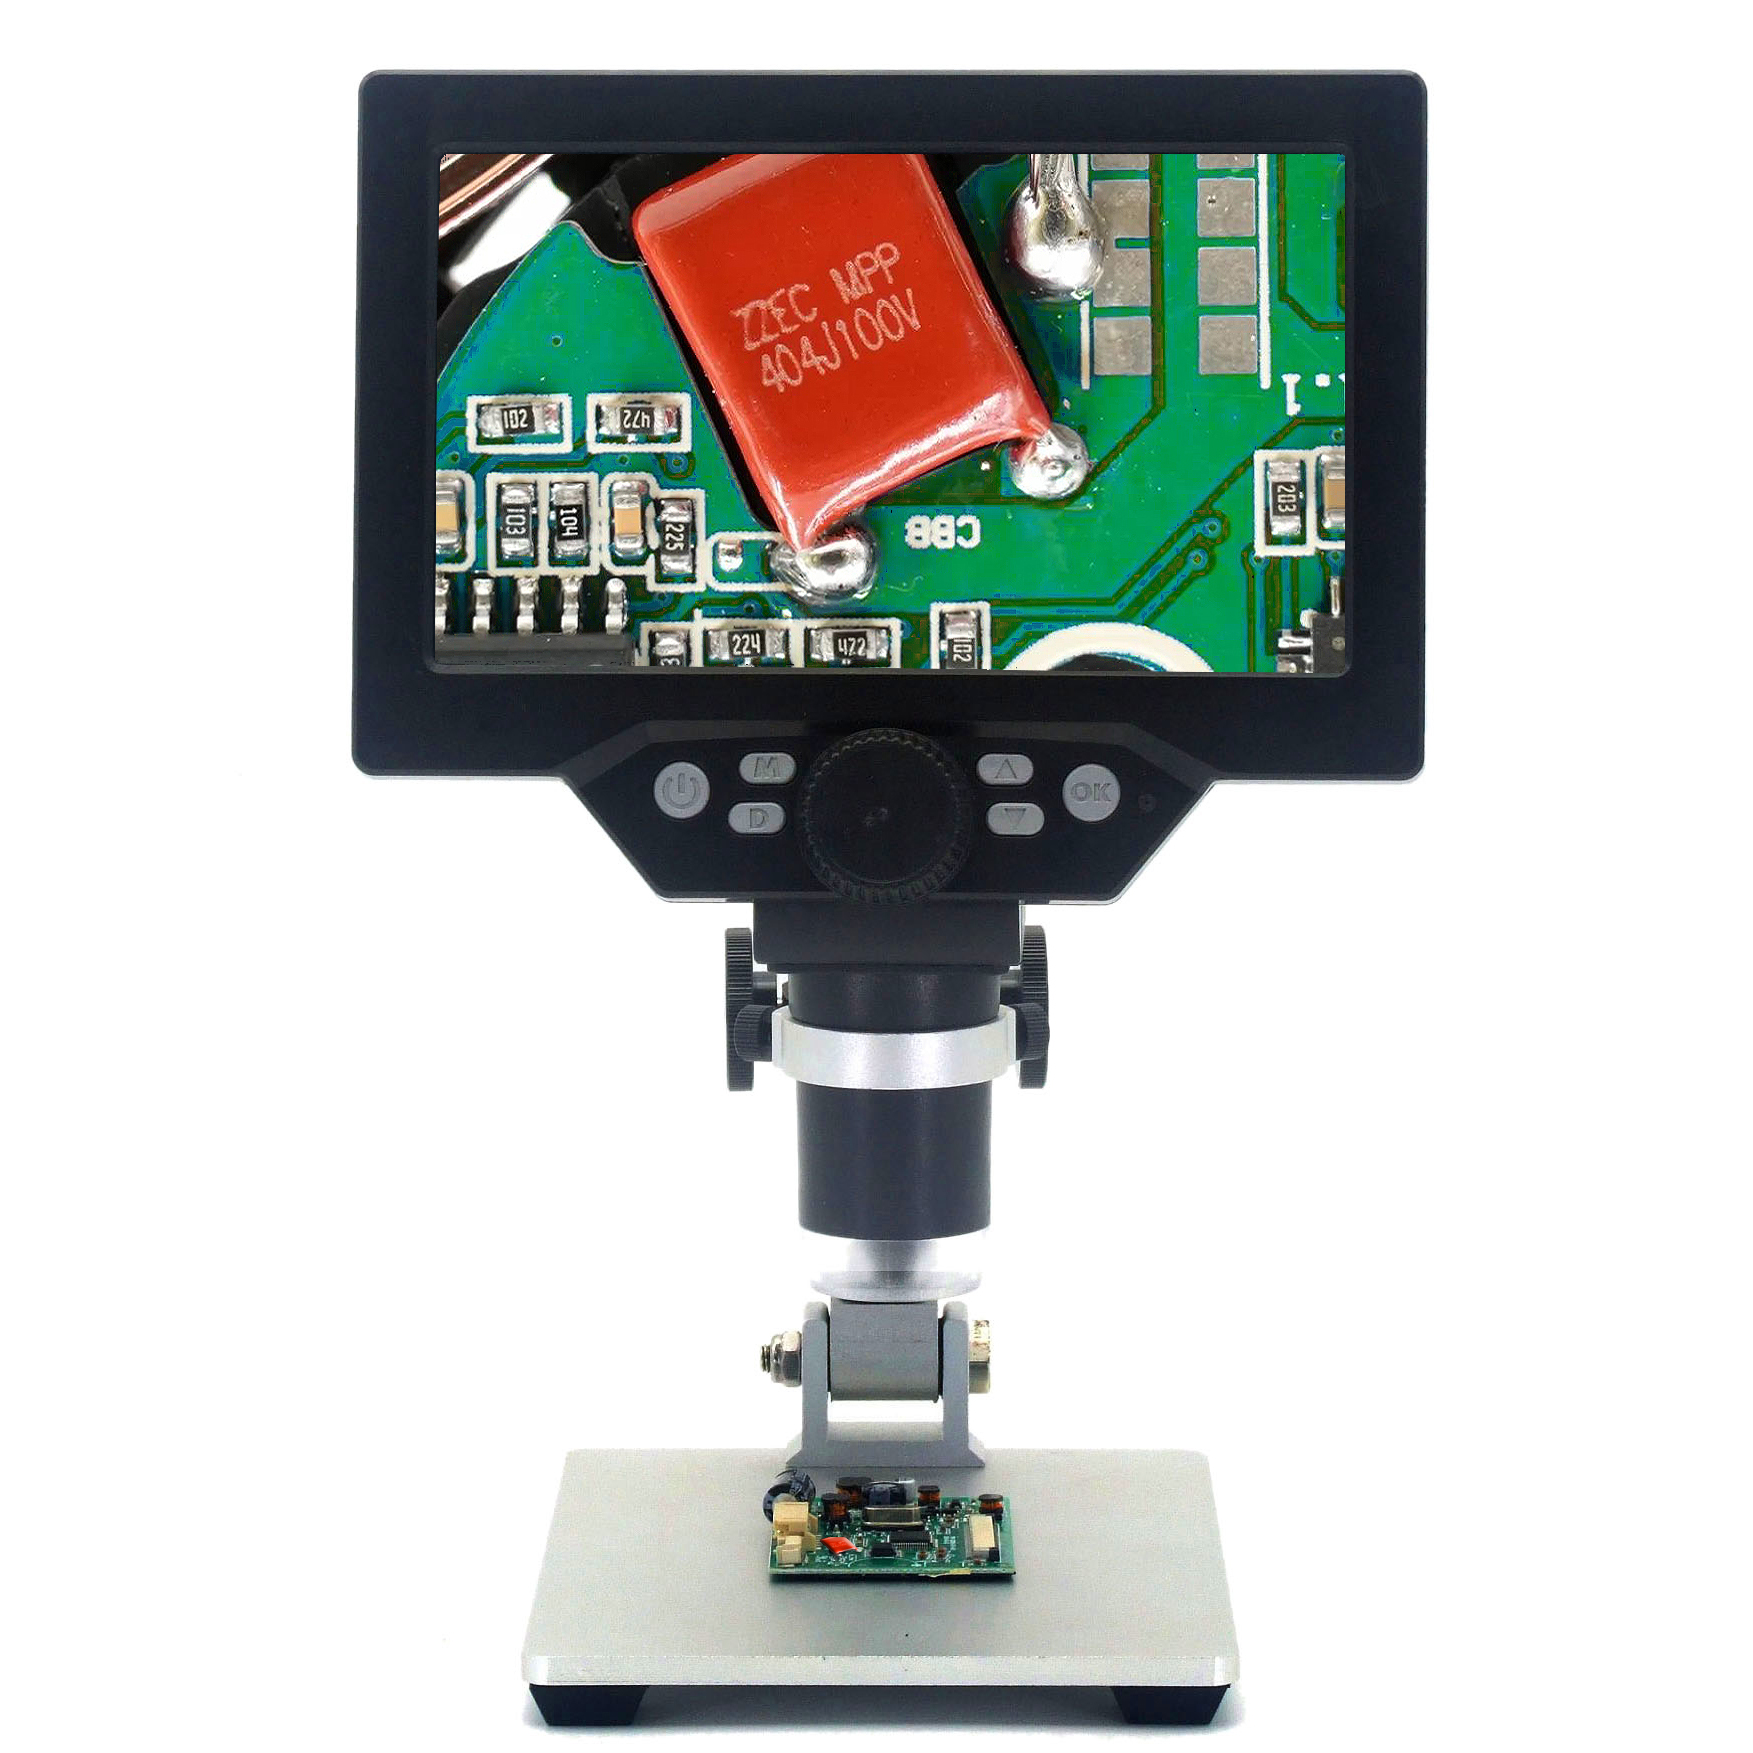 7 Inch Digital Microscope Ranging From 1 To 1200 Times Magnification With 16 Languages Electronic Type